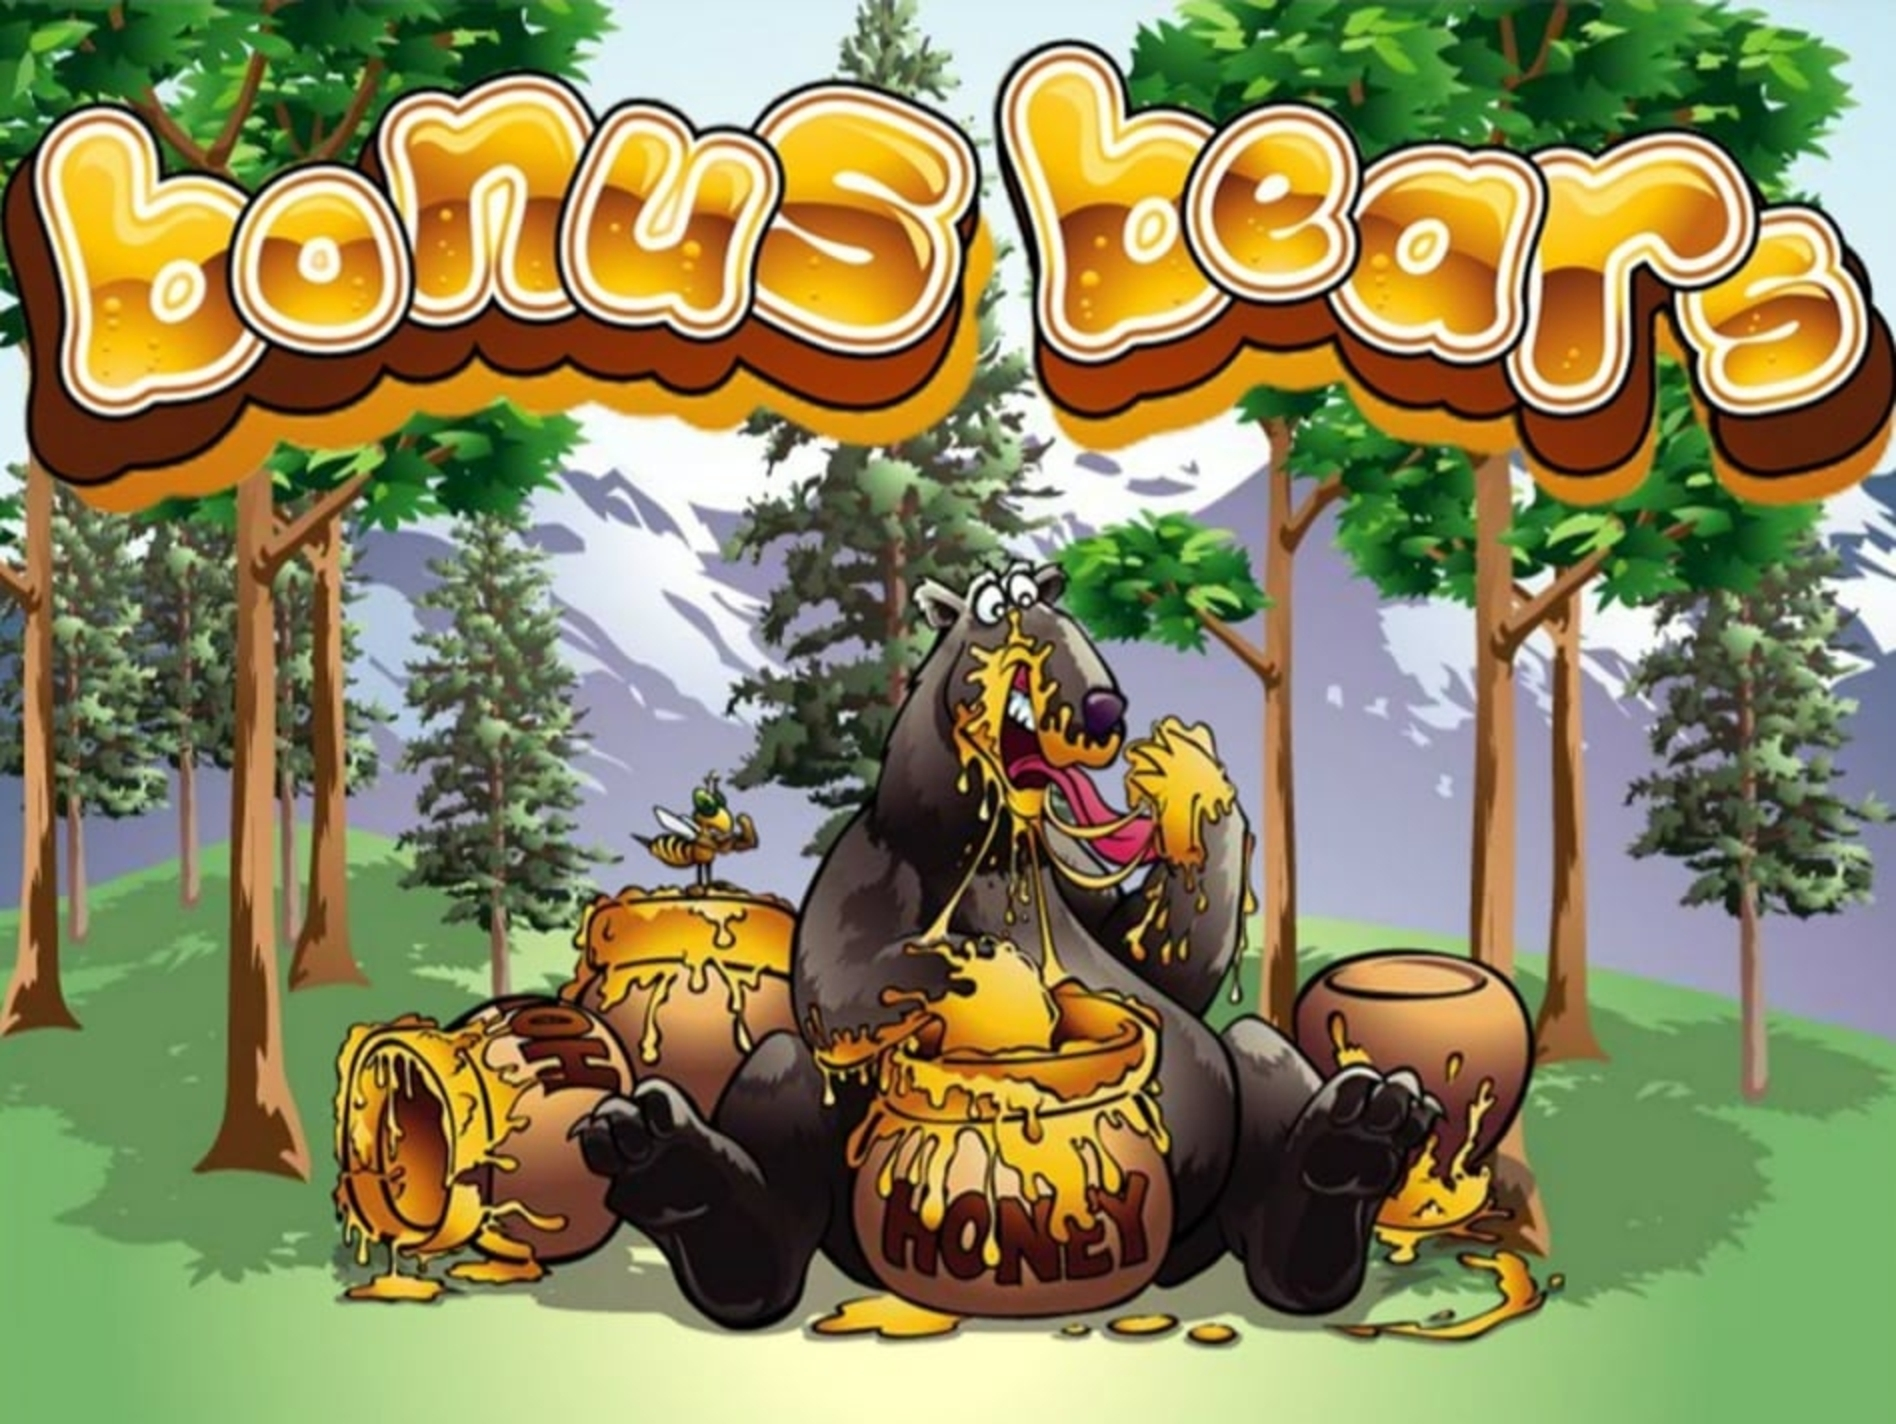 The Bonus Bears Online Slot Demo Game by Playtech